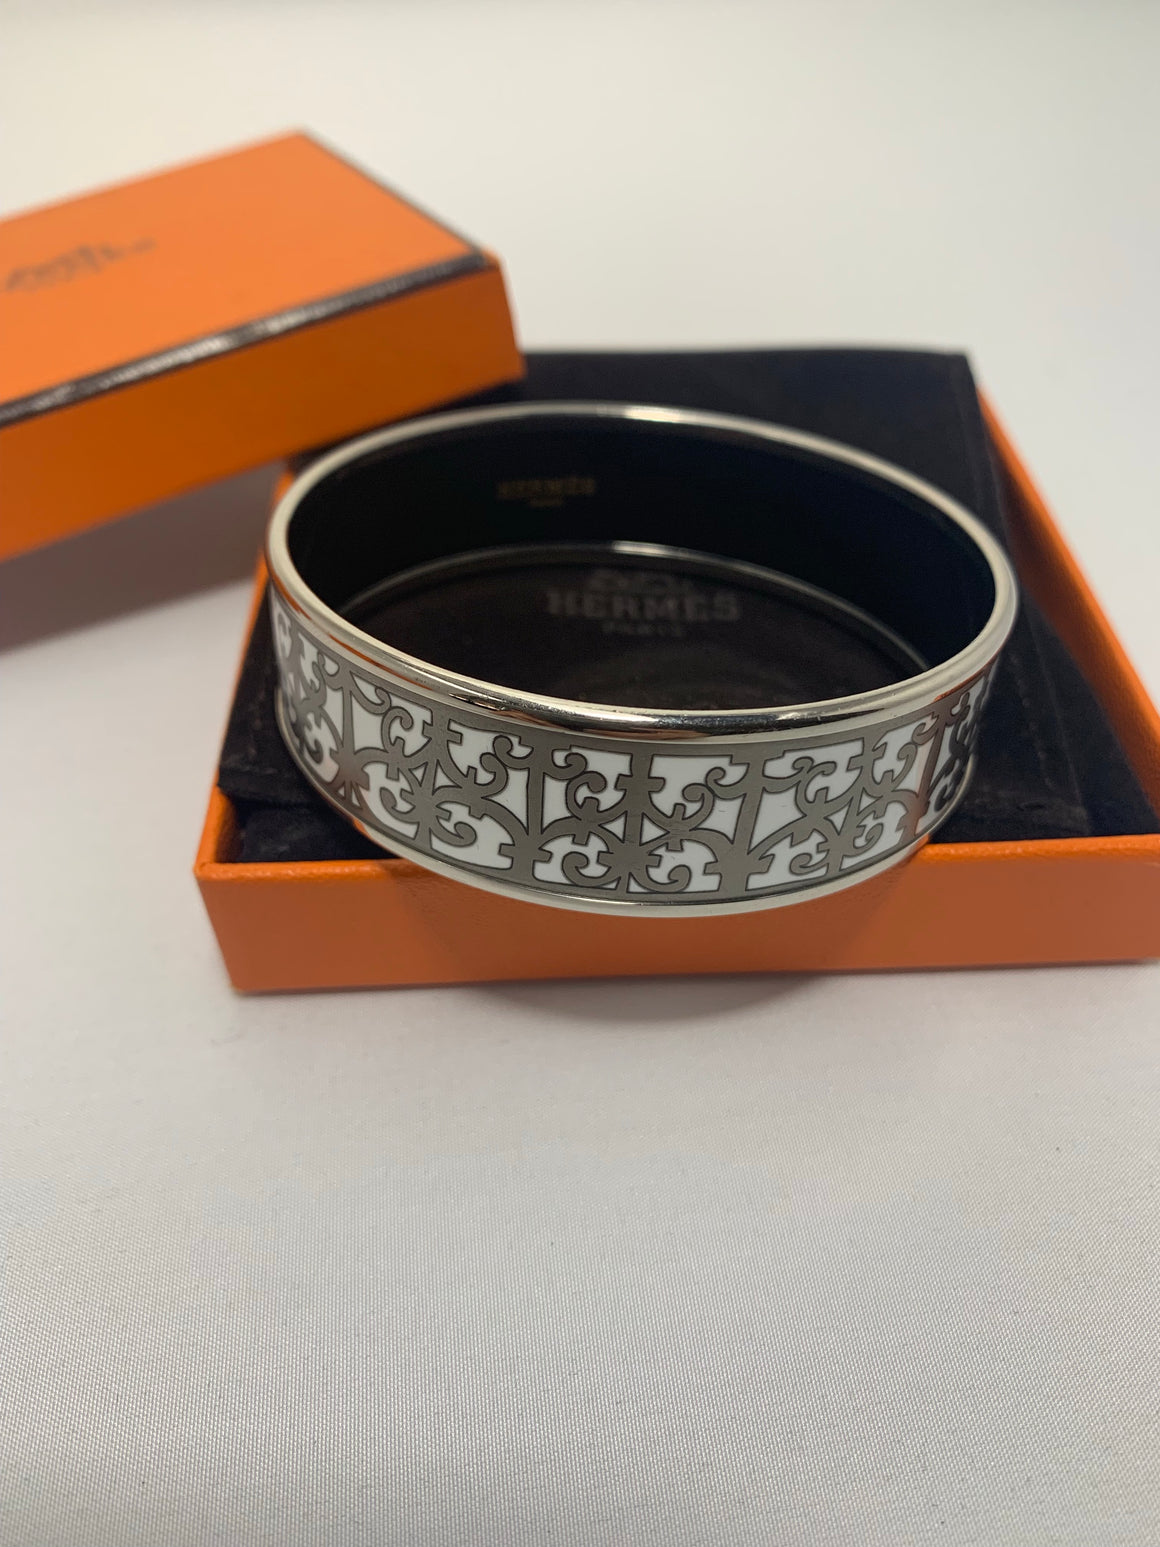 Hermès Balcons du Guadalquivir Bangle! - New York Authentic Designer - Hermès